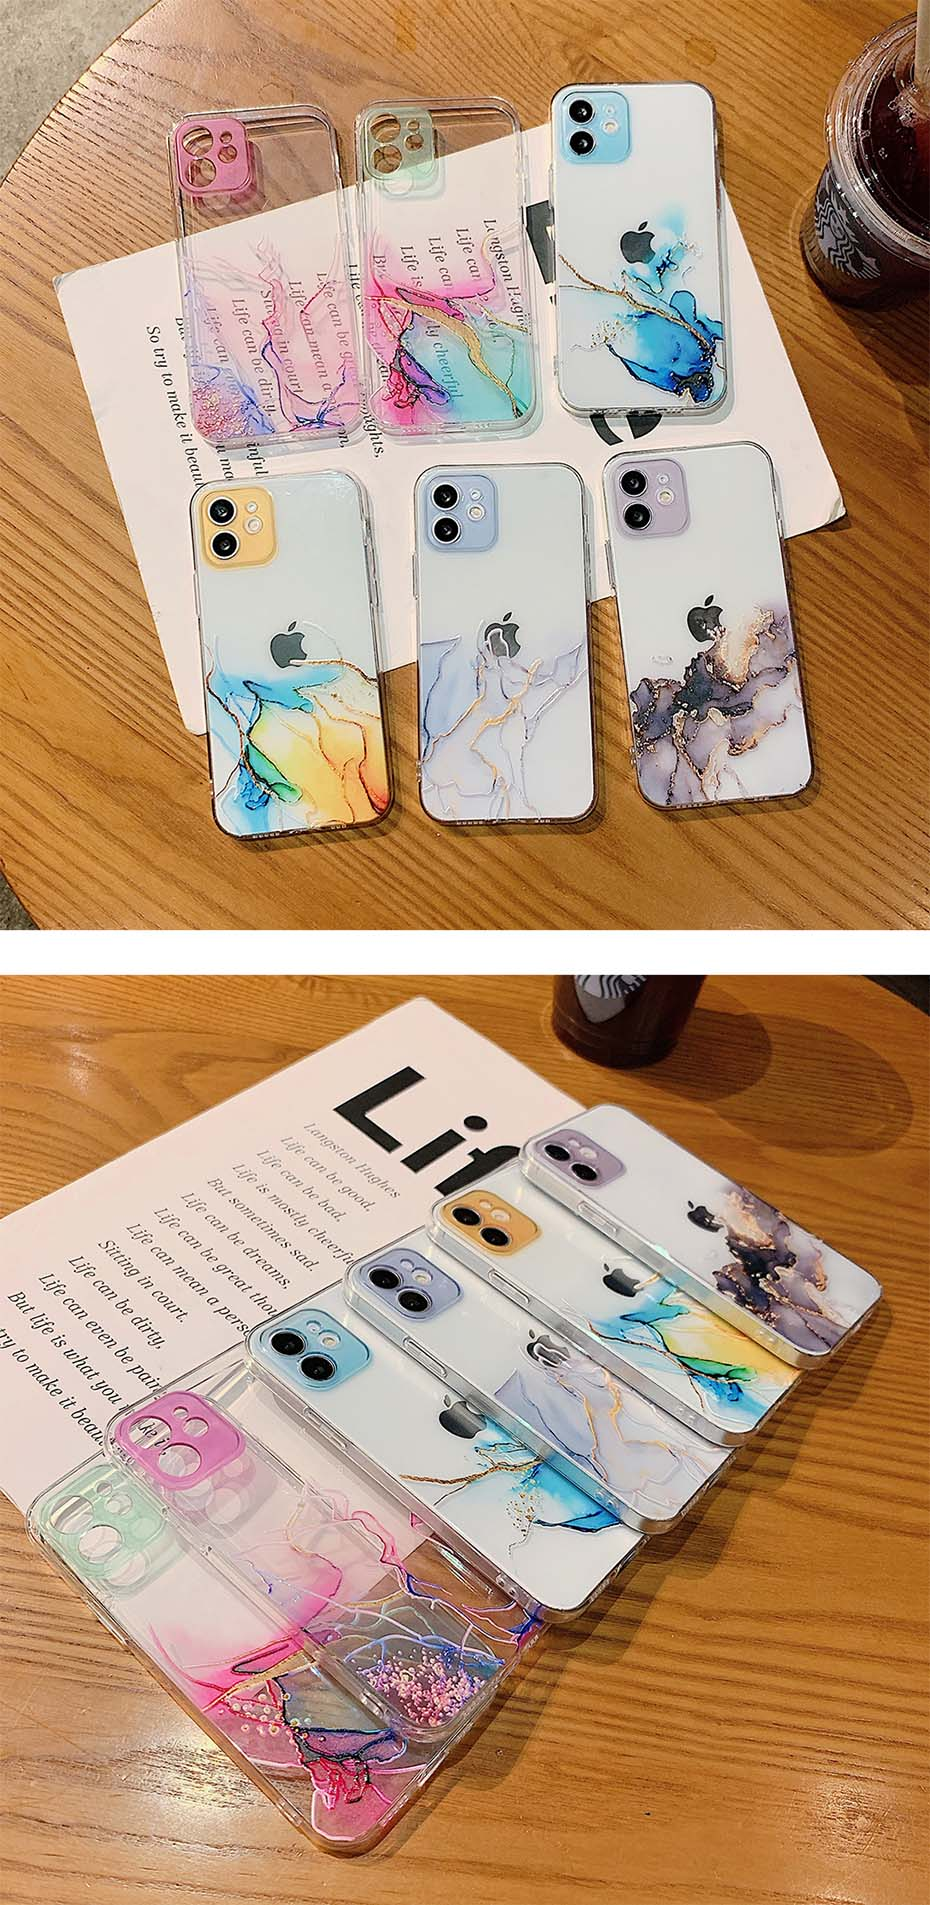 Marble Watercolor Painting Design iPhone Case Transparent Shockproof Cover For iPhone 13 12 11 Pro X XR Max Case For iPhone 8 7 Plus XS Max